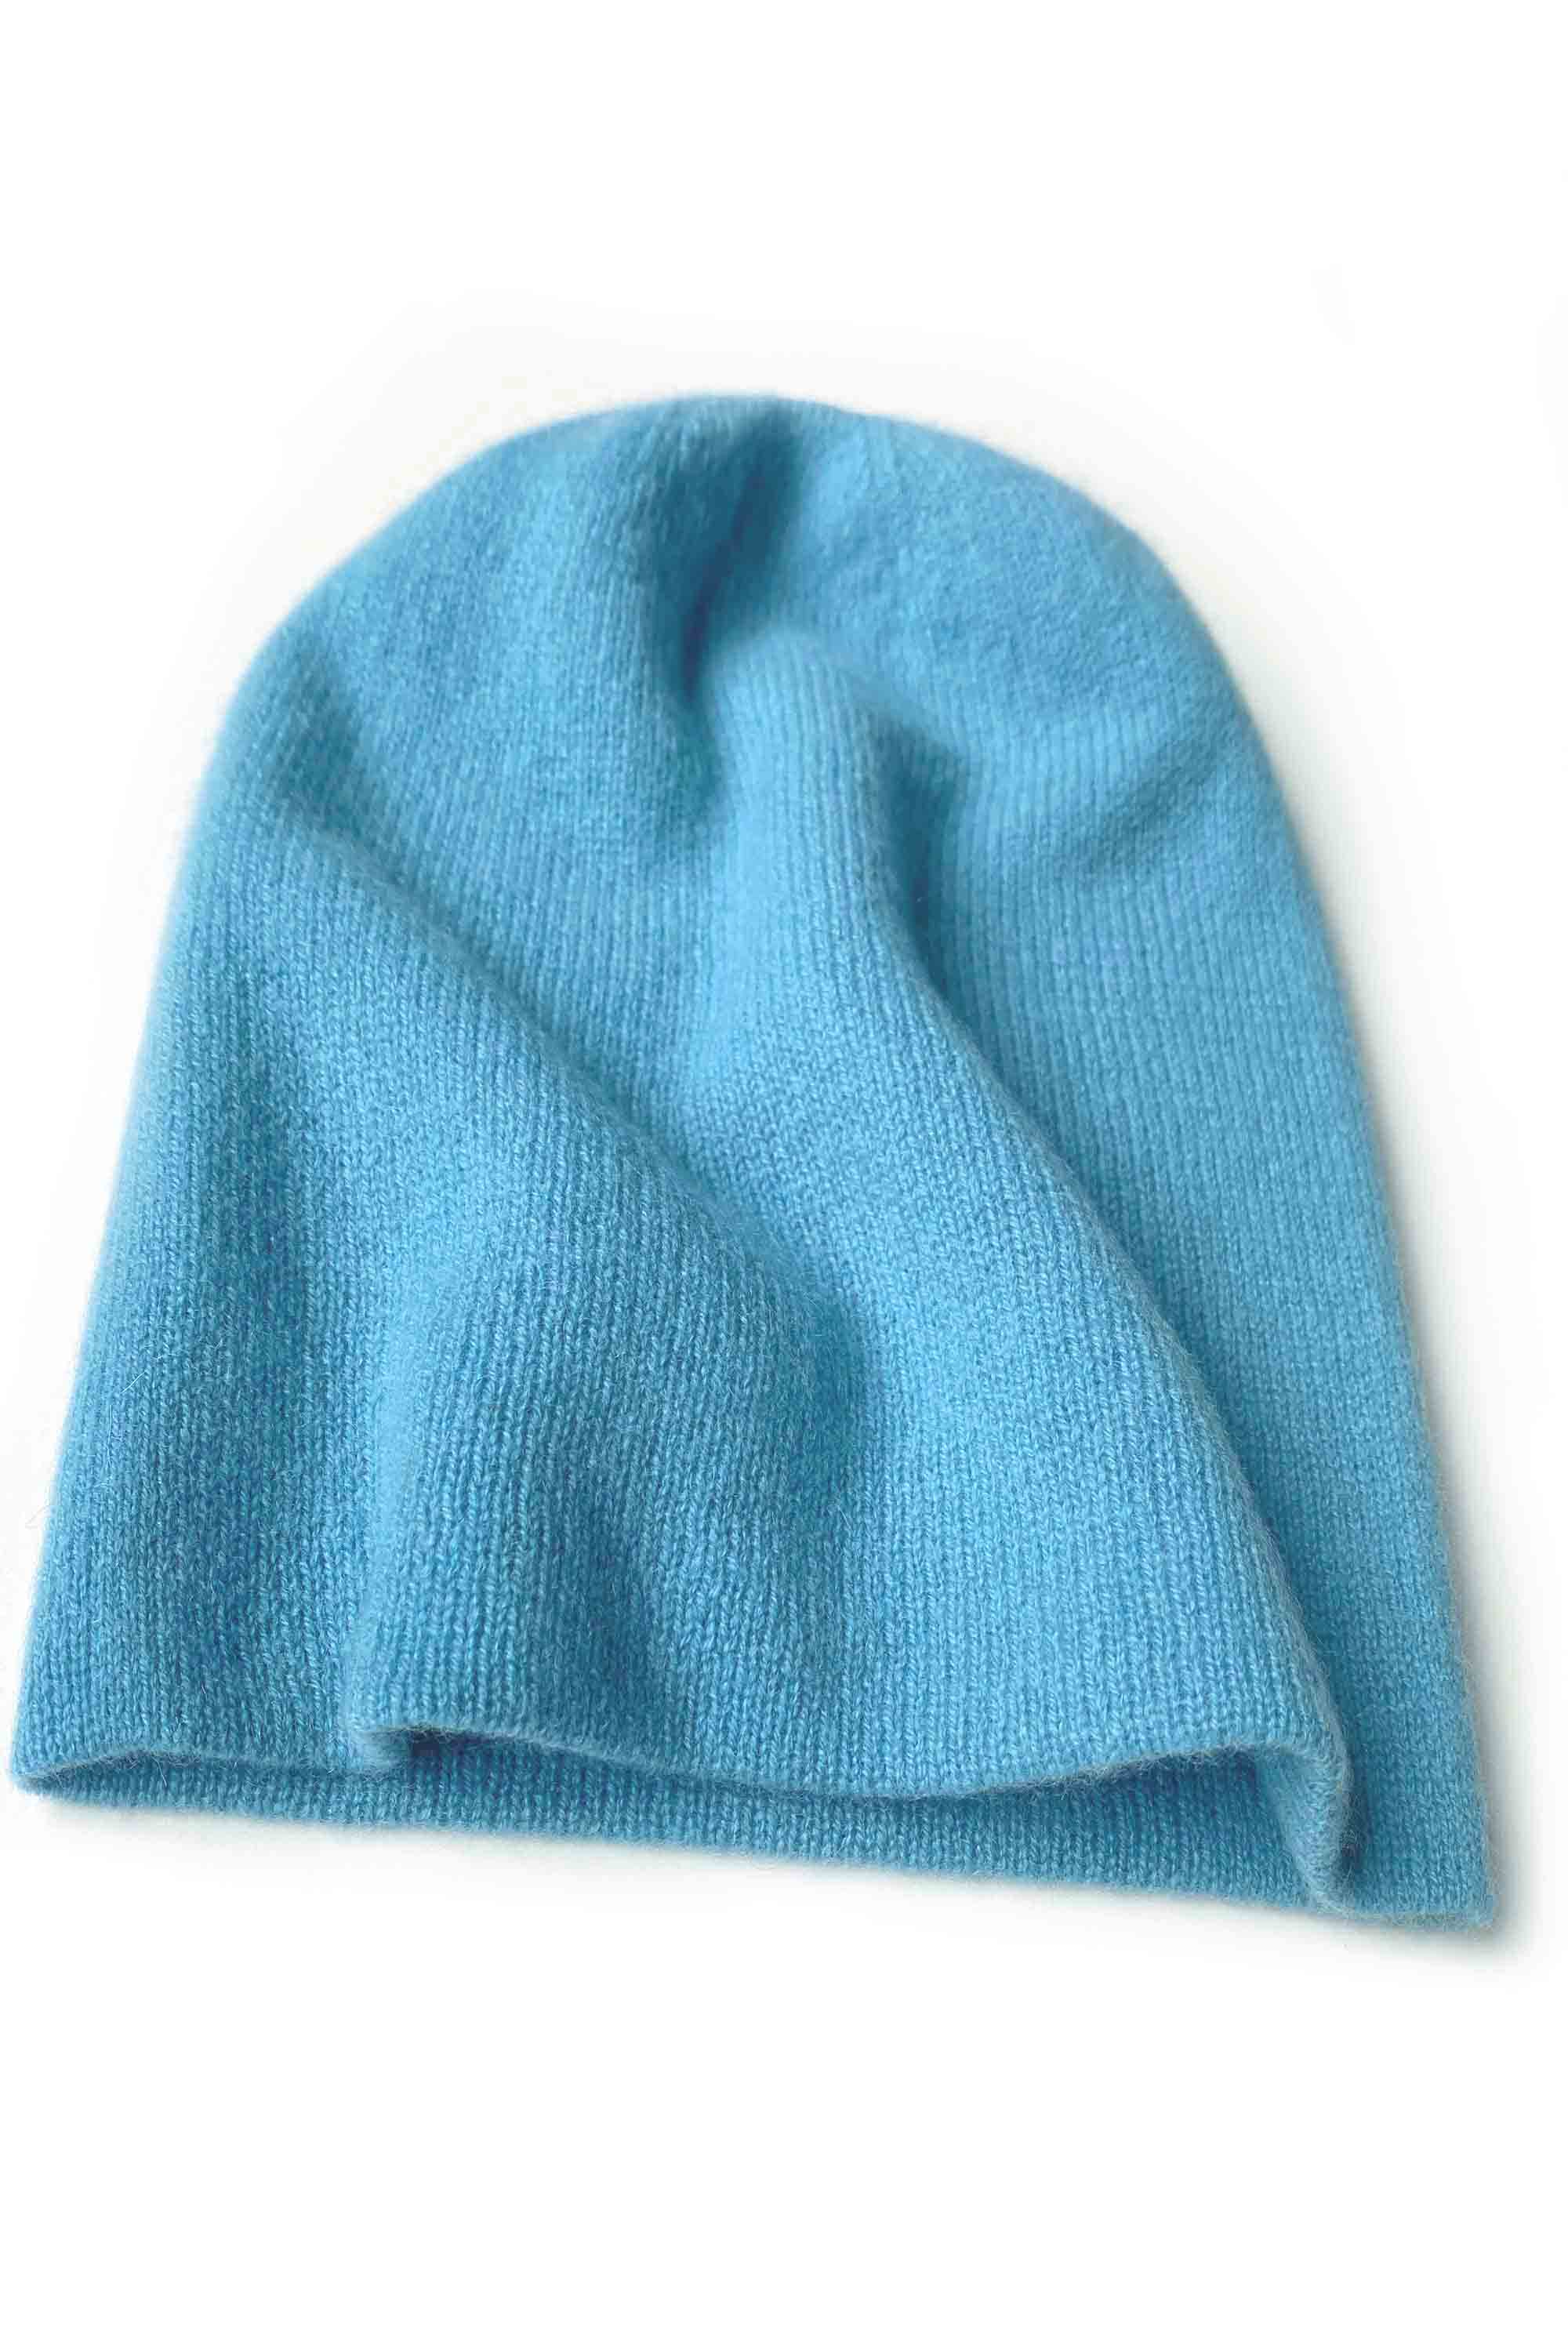 Womens 100% pure cashmere hat in sky blue | SEMON Cashmere